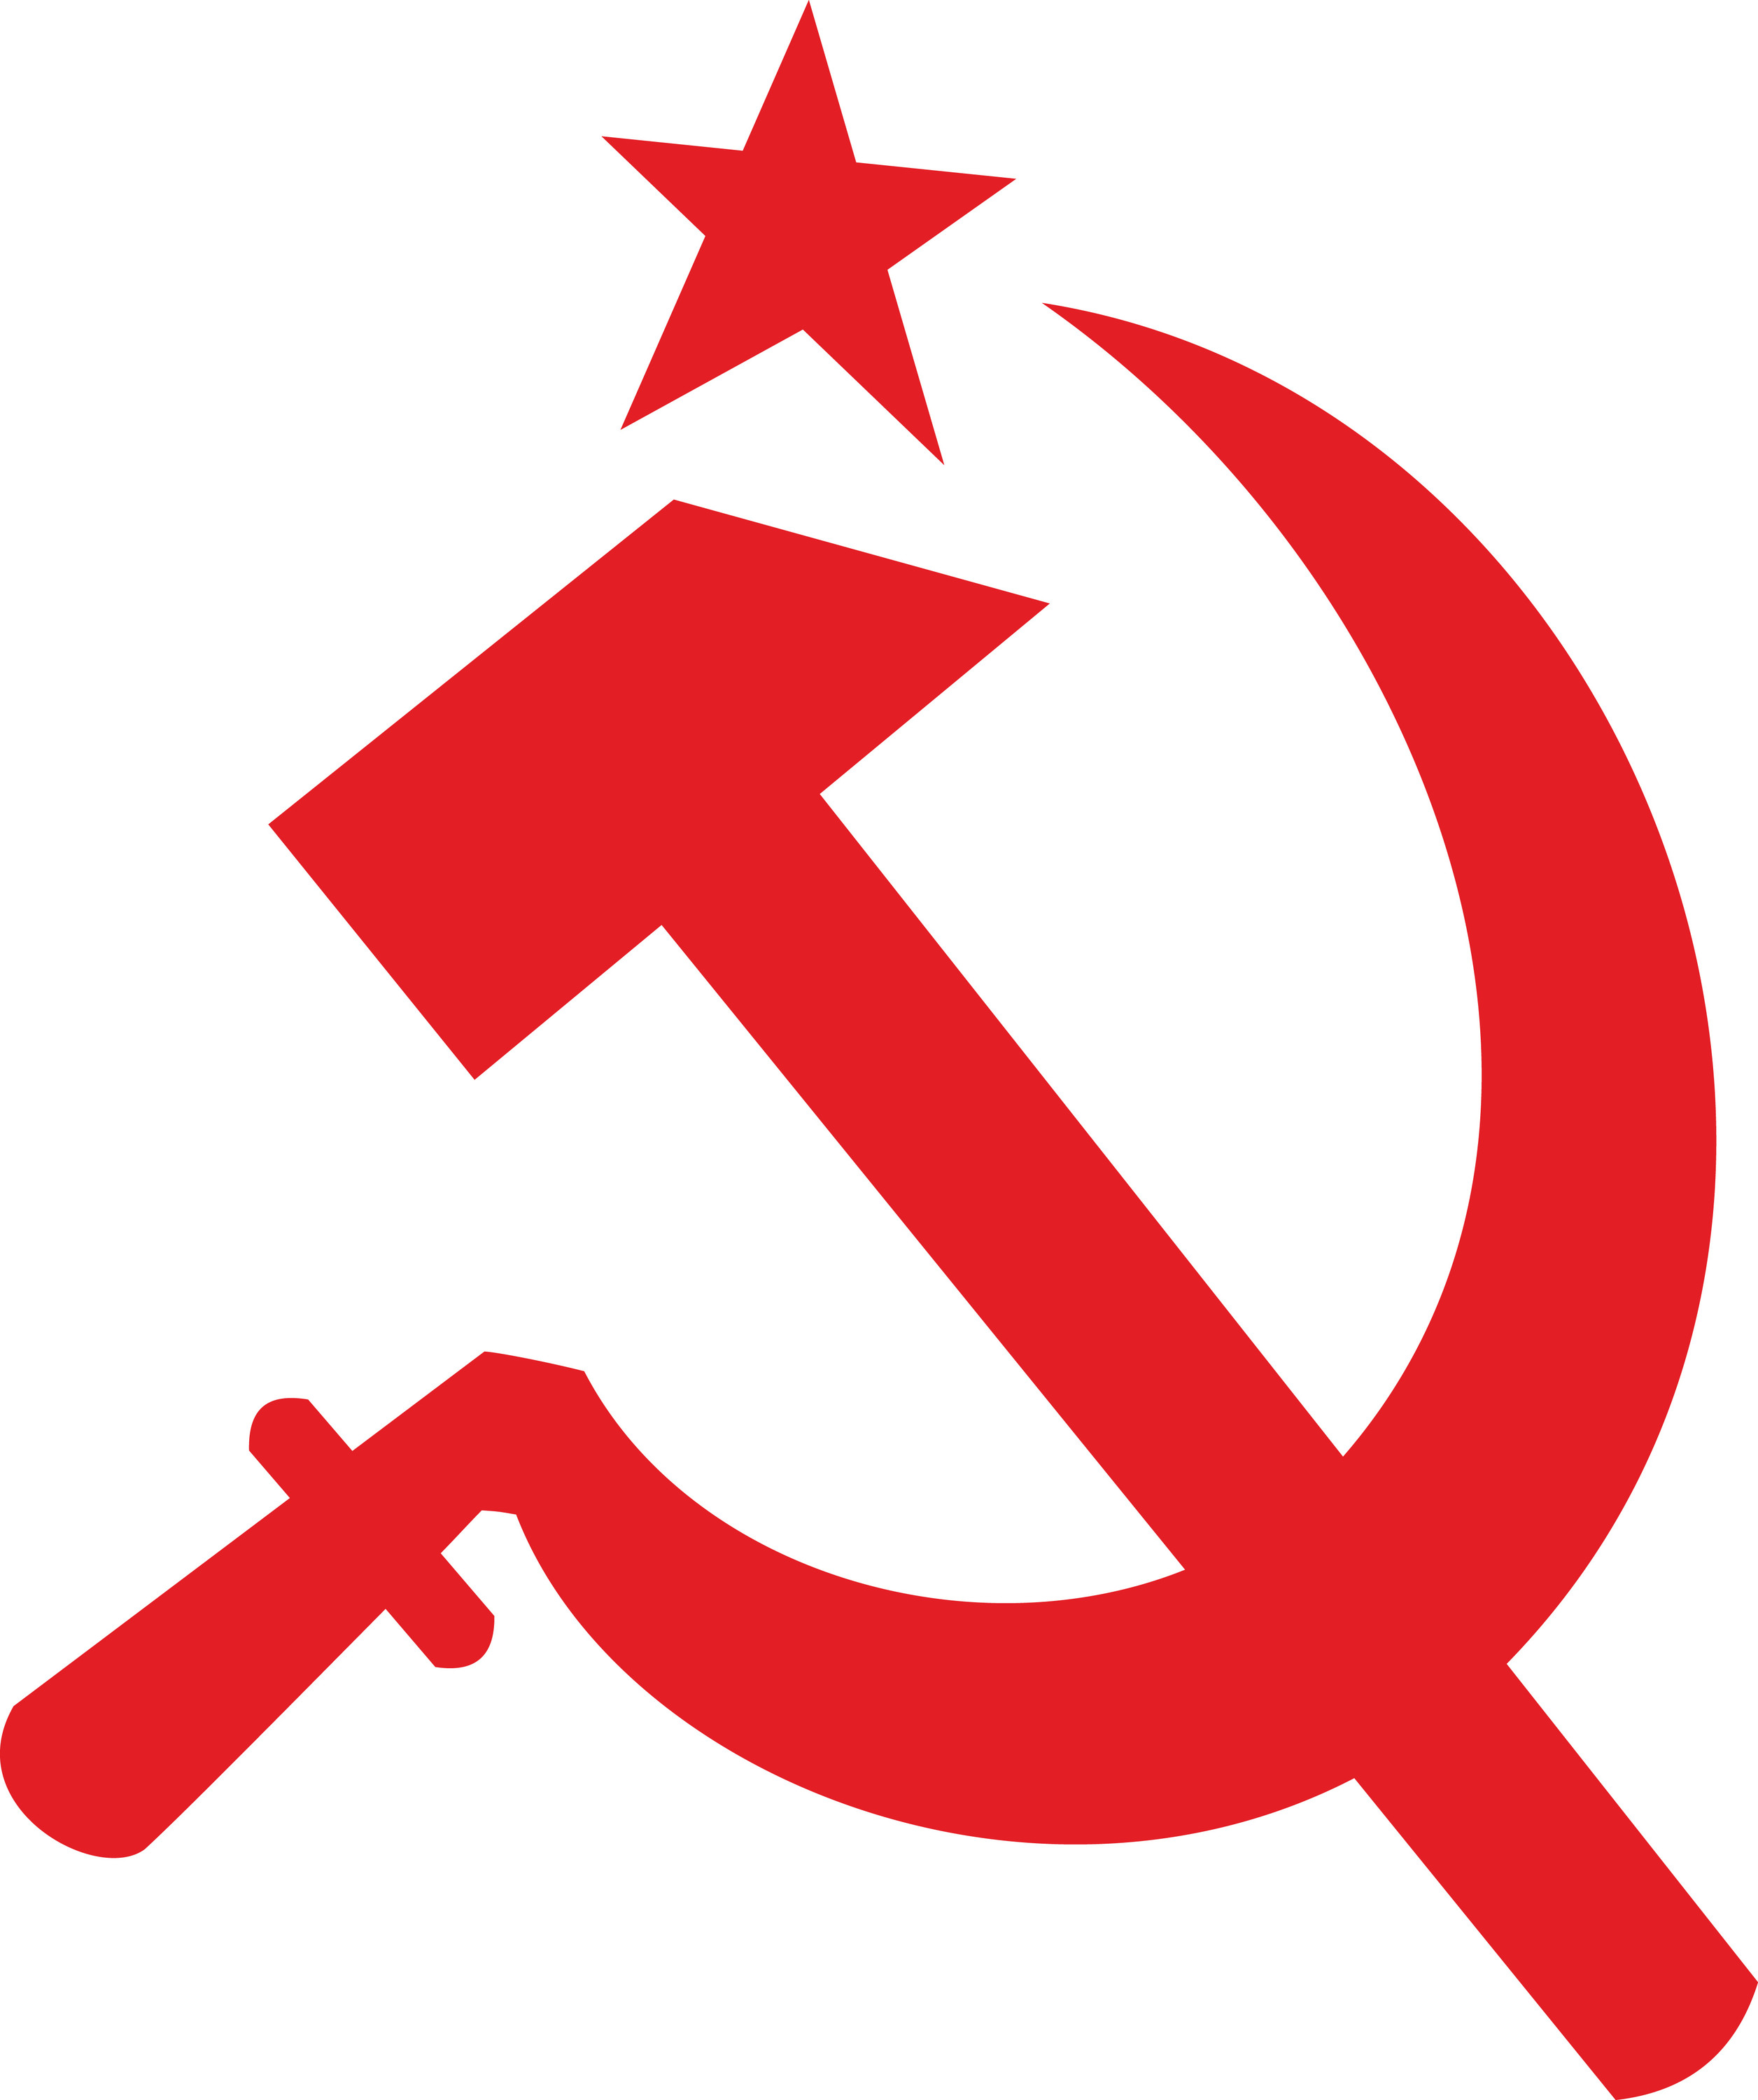 short communism Self-identified communists hold a variety of views, including marxism, dengism,  trotskyism,  libertarian communist library marxists internet archive marxist net the mu particle in communism, a short etymological essay by wu ming.